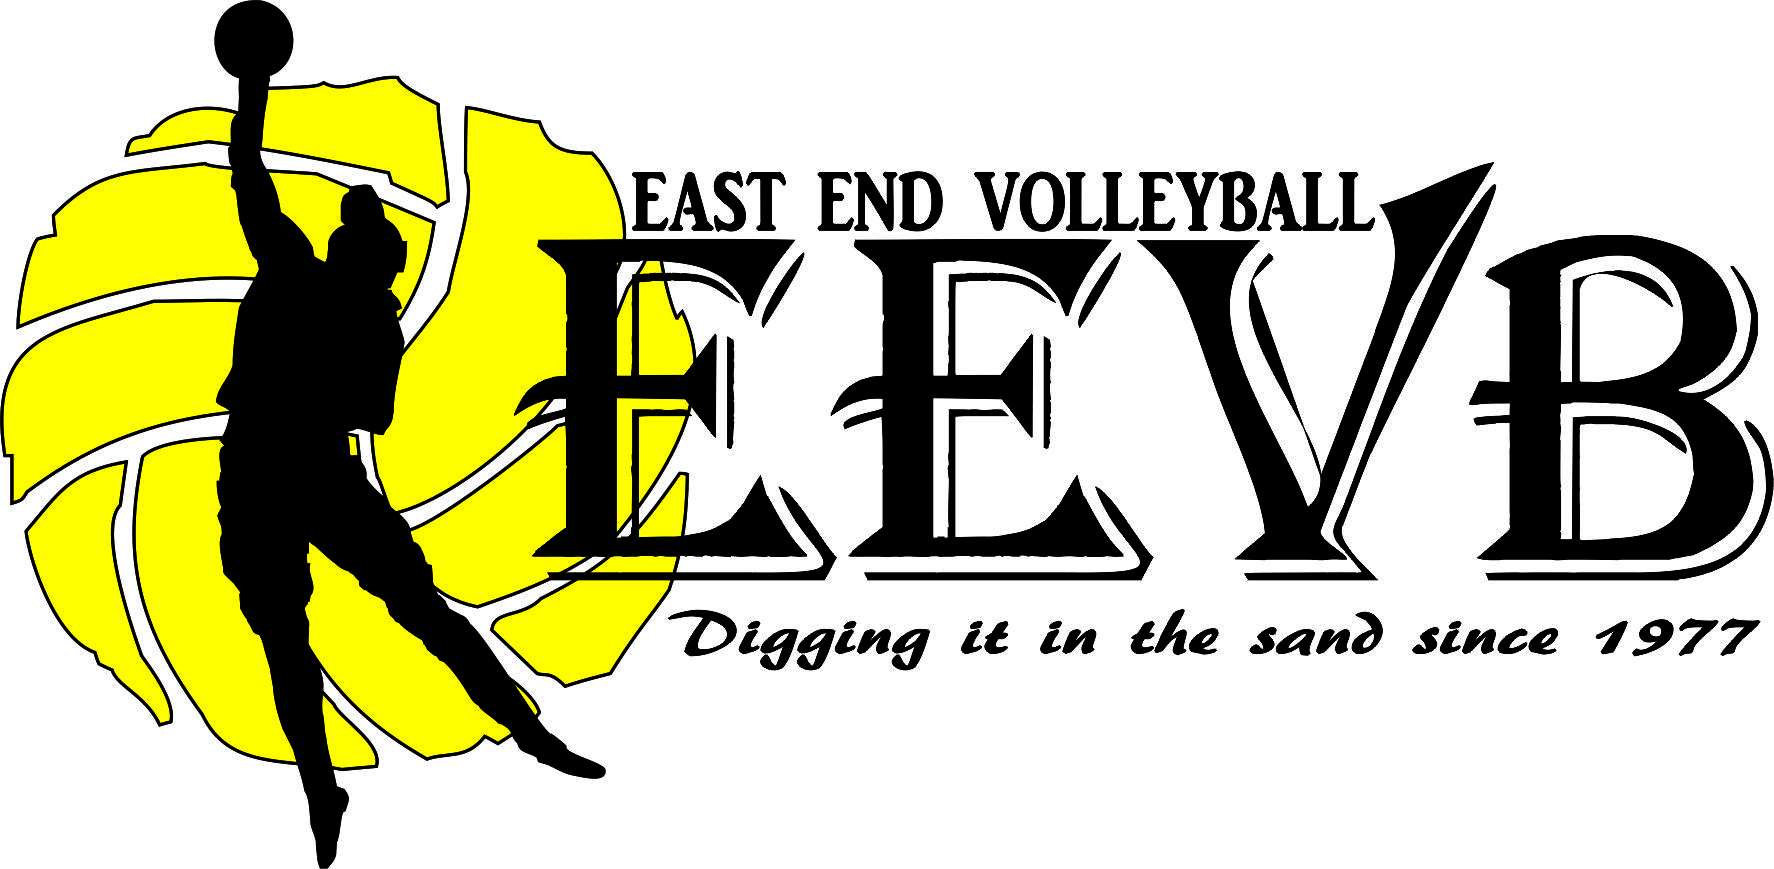 Play Beach Volleyball Leagues On Long Island This Summer Volleyball Dig Beach Volleyball Volleyball